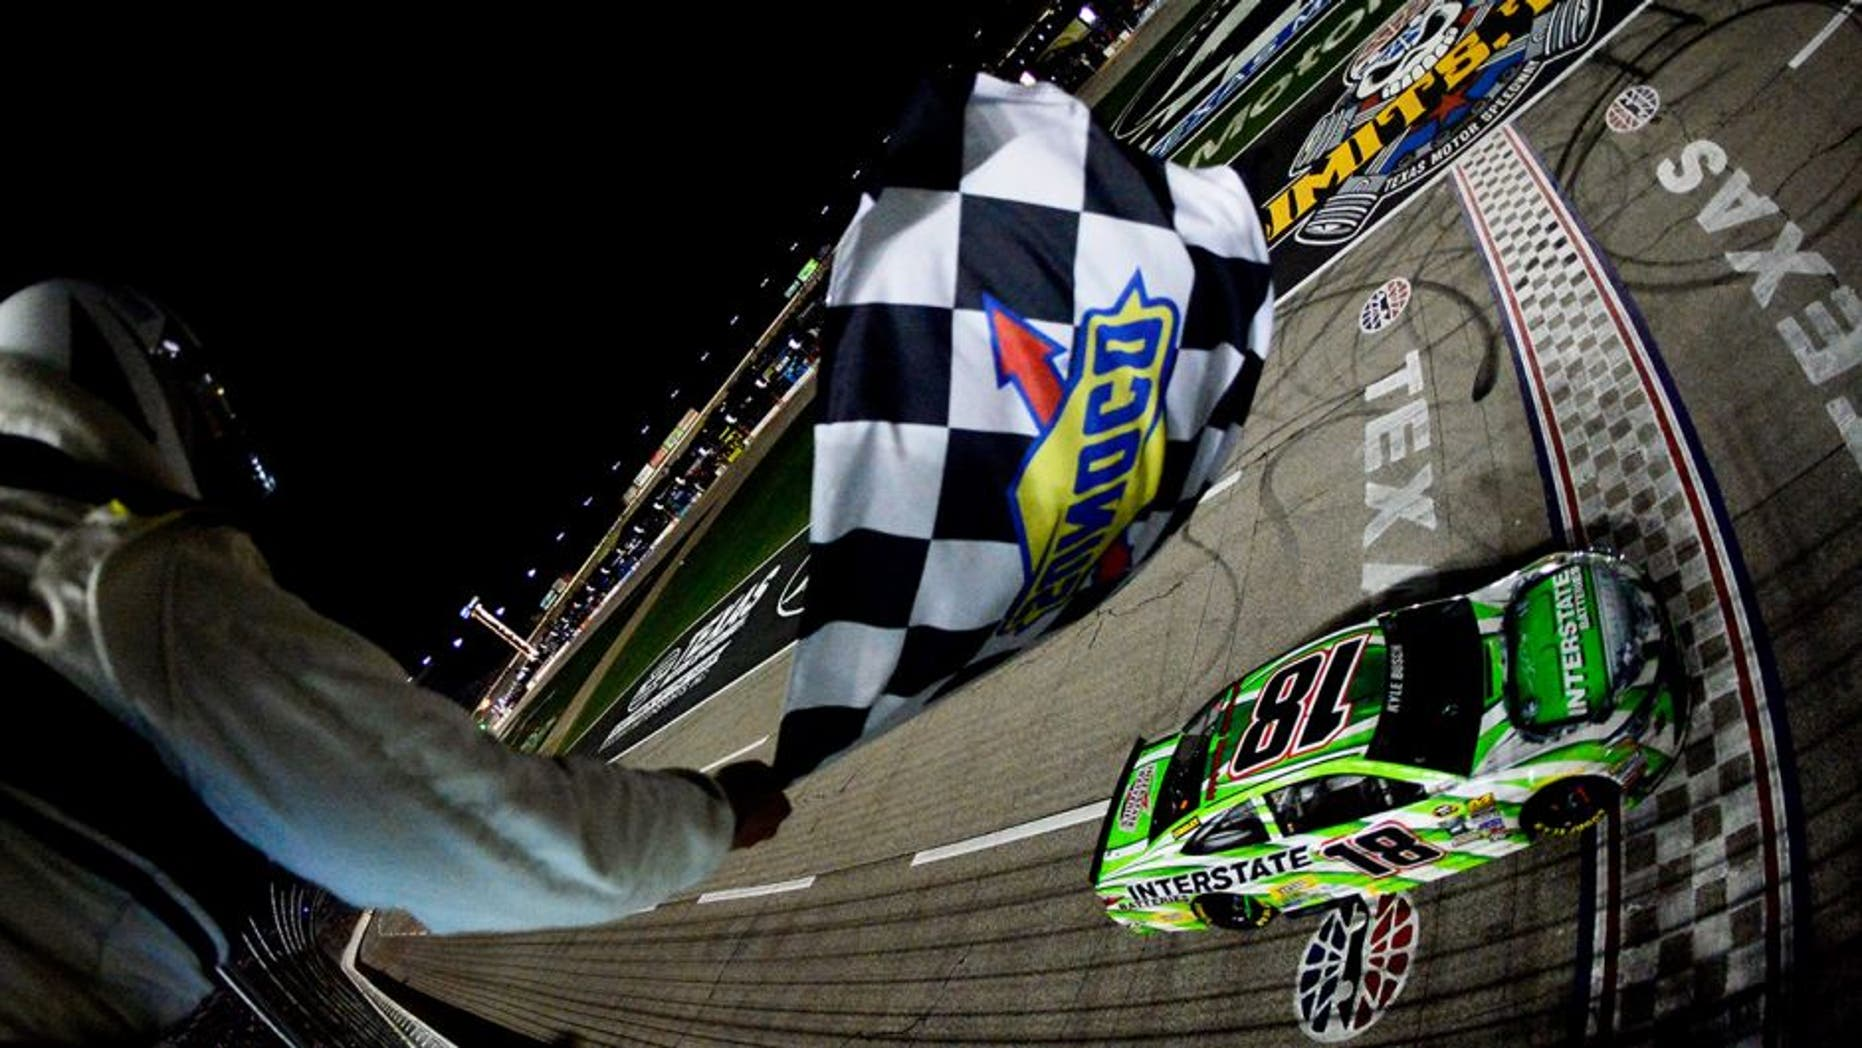 FORT WORTH, TEXAS - APRIL 09: Kyle Busch, driver of the #18 Interstate Batteries Toyota, takes the checkered flag to win the NASCAR Sprint Cup Series Duck Commander 500 at Texas Motor Speedway on April 9, 2016 in Fort Worth, Texas. (Photo by Robert Laberge/NASCAR via Getty Images)